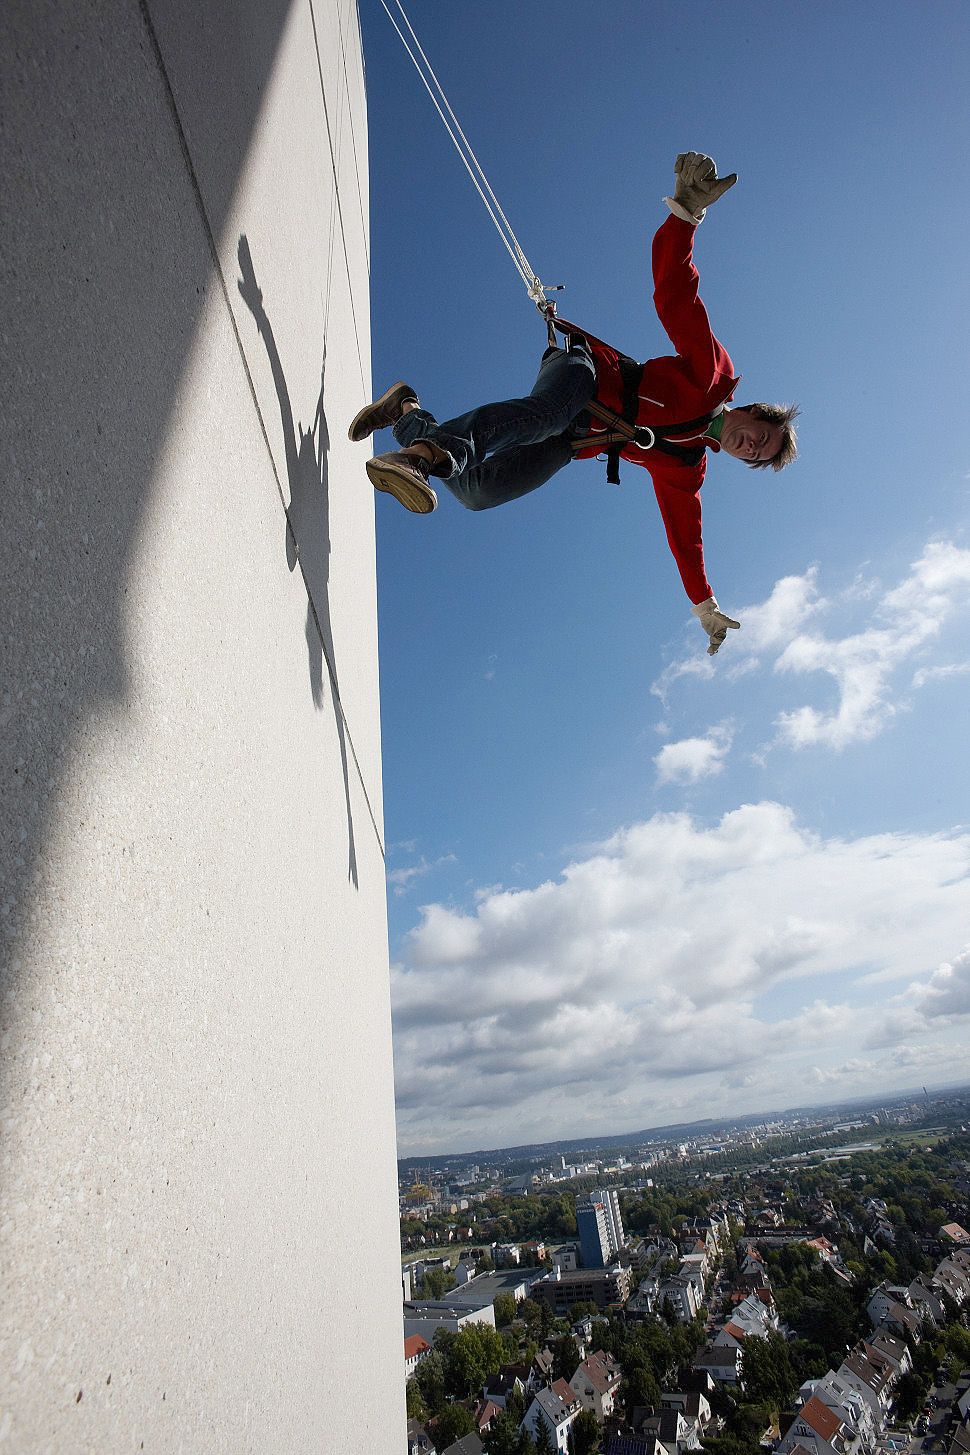 Bungee Jumping Und House Running RPw In The Picture